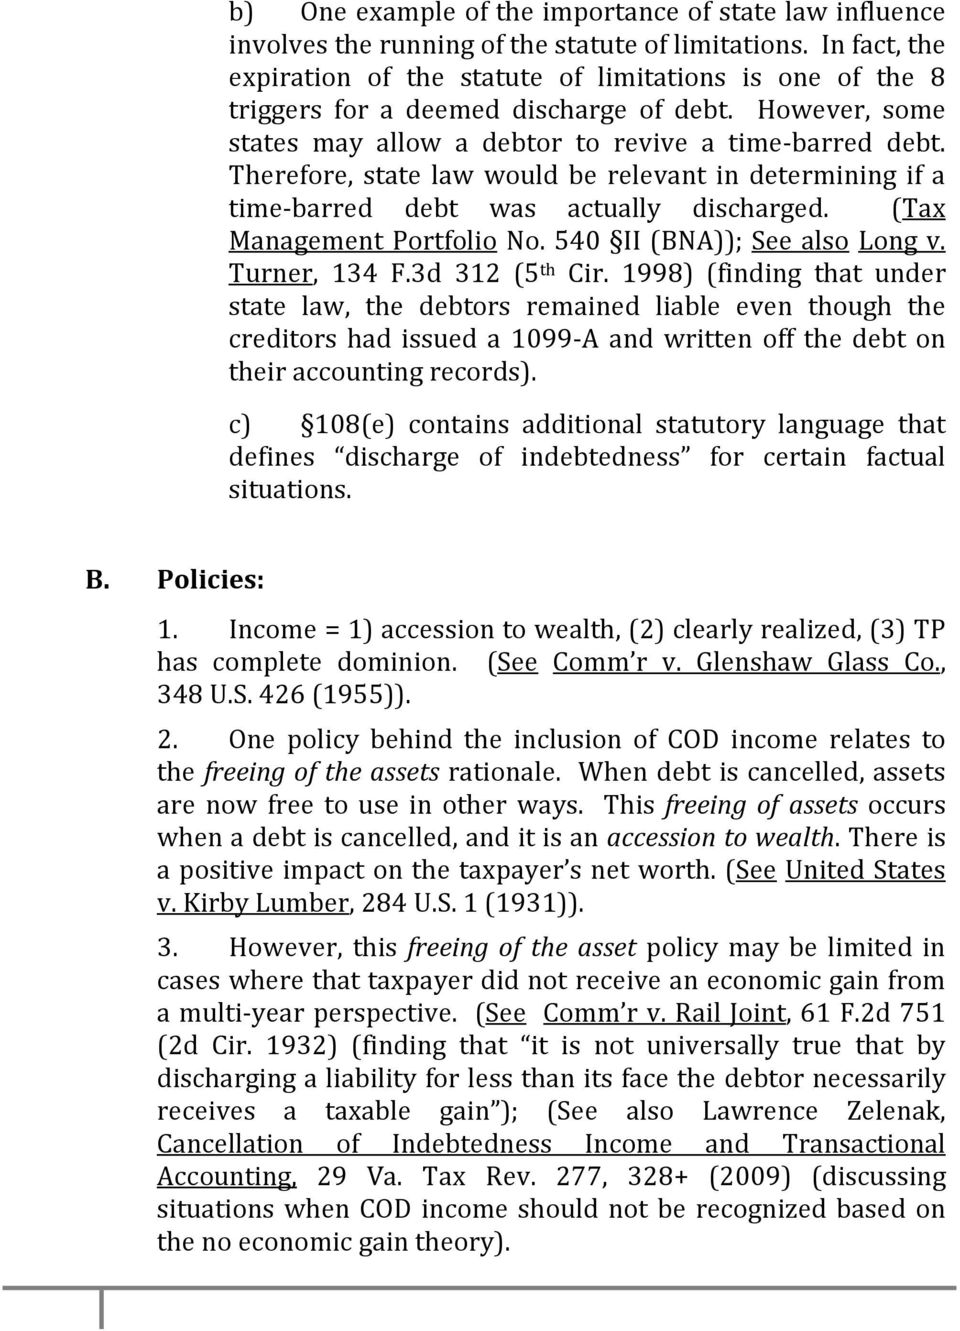 Therefore, state law would be relevant in determining if a time-barred debt was actually discharged. (Tax Management Portfolio No. 540 II(BNA)); See also Long v. Turner, 134 F.3d 312 (5 th Cir.